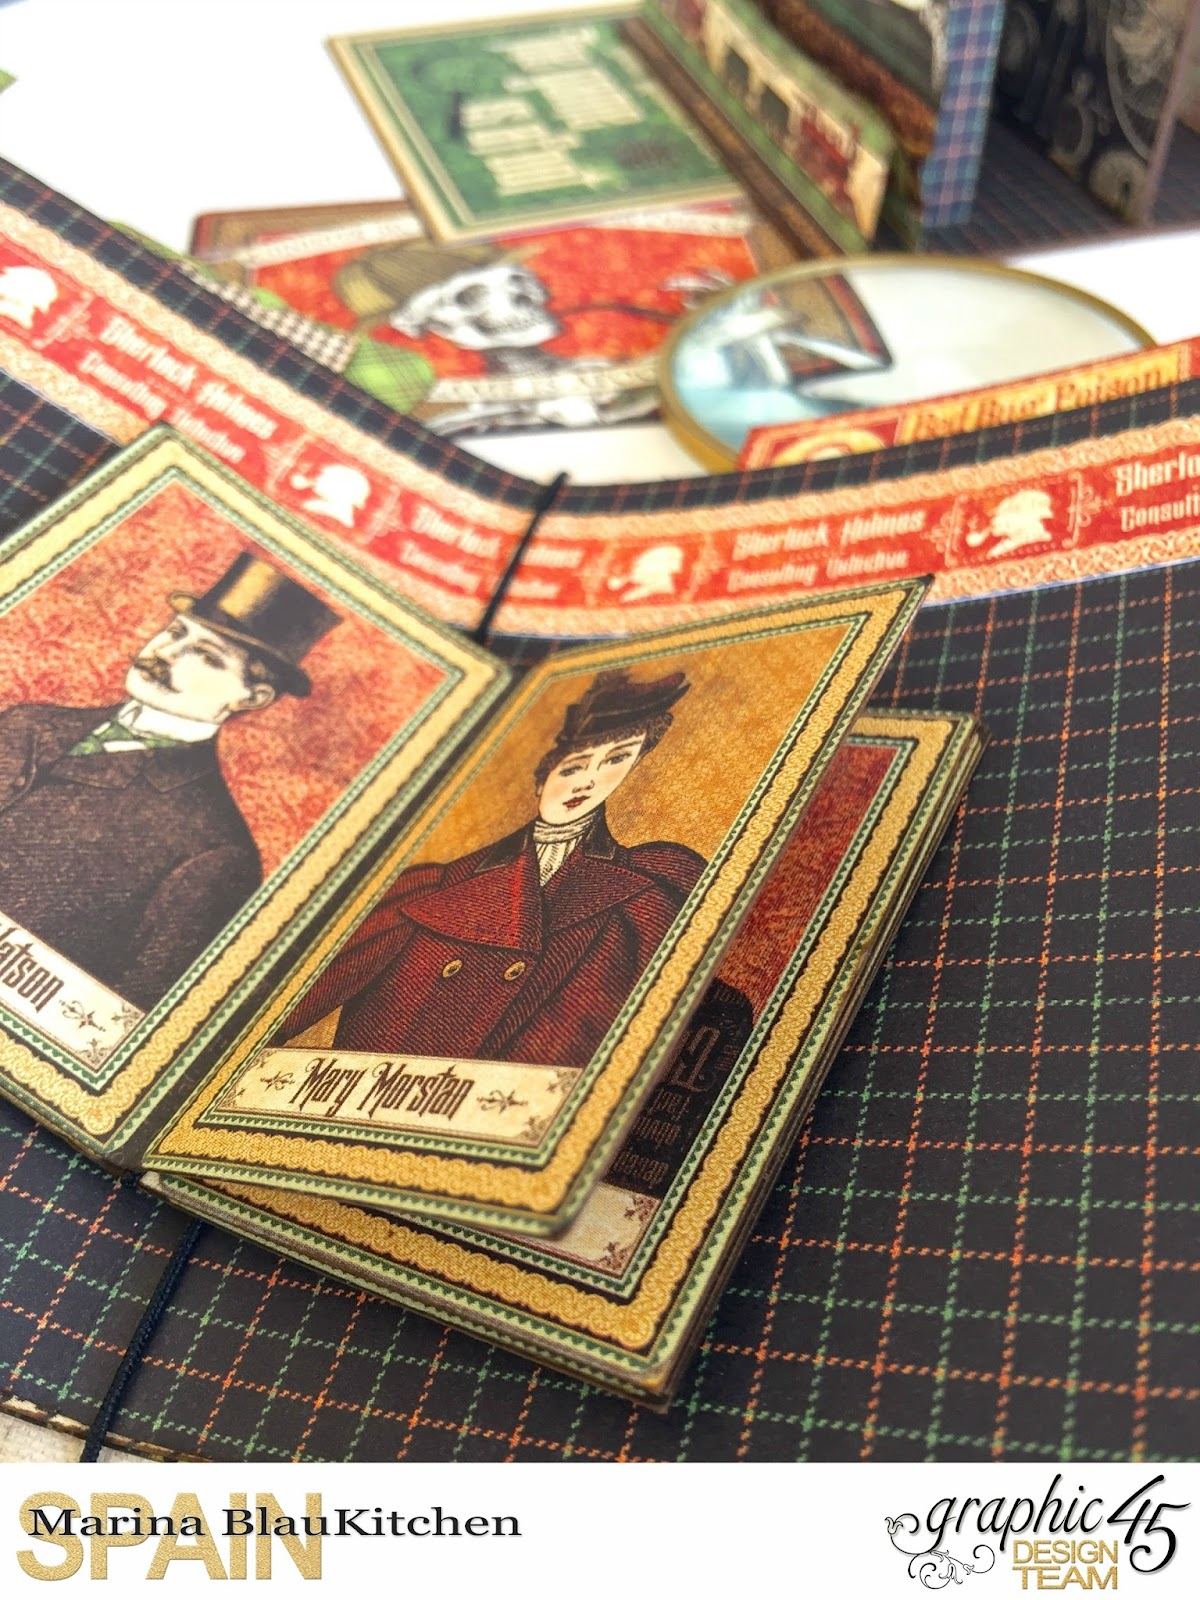 Stand and Mini Album Master Detective by Marina Blaukitchen Product by Graphic 45 photo 20.jpg